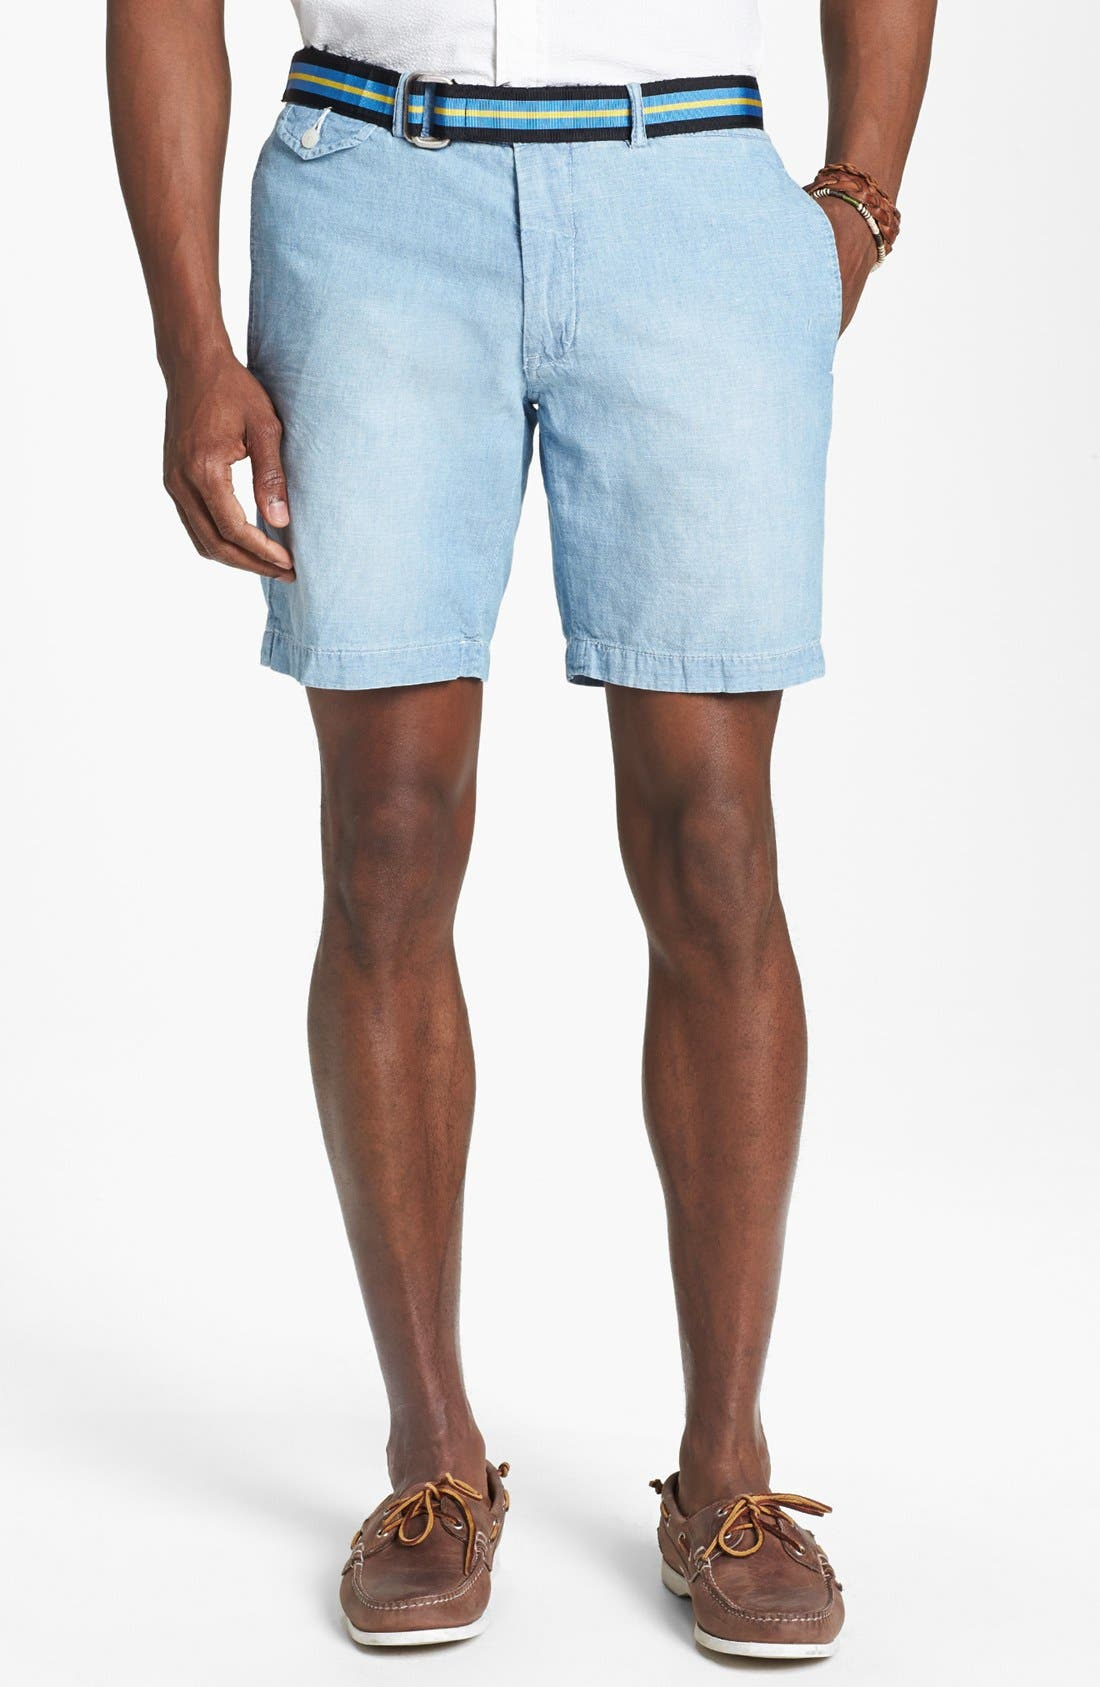 Alternate Image 1 Selected - Polo Ralph Lauren 'Greenwich' Shorts